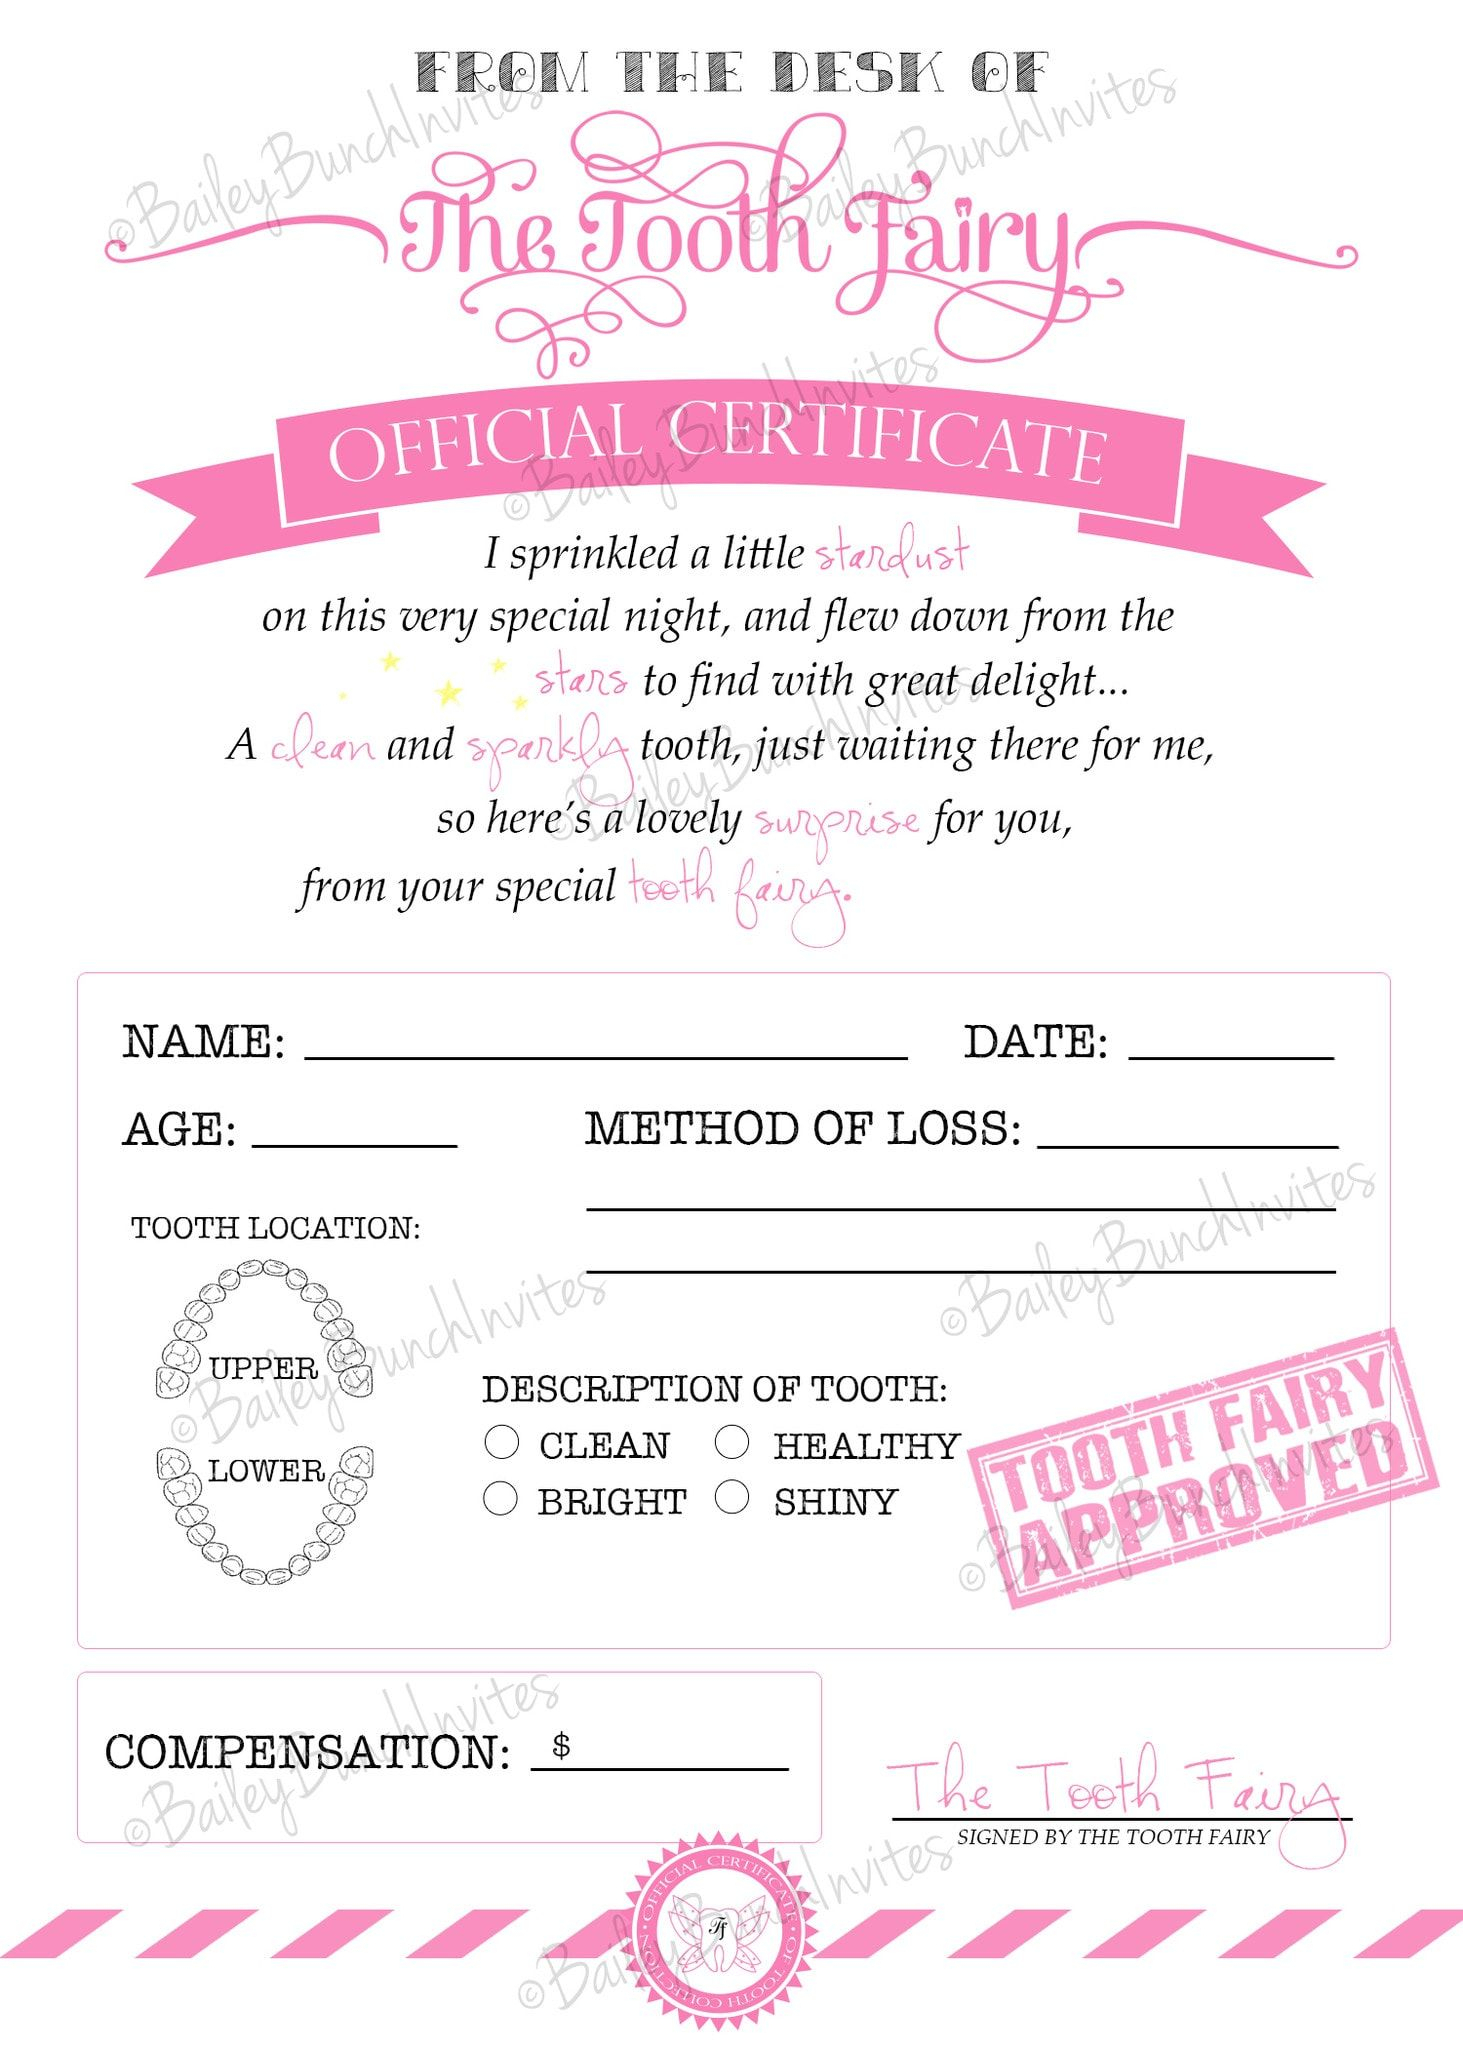 Tooth Fairy Certificate - Pink - Instant Download With Tooth Fairy Certificate Template Free